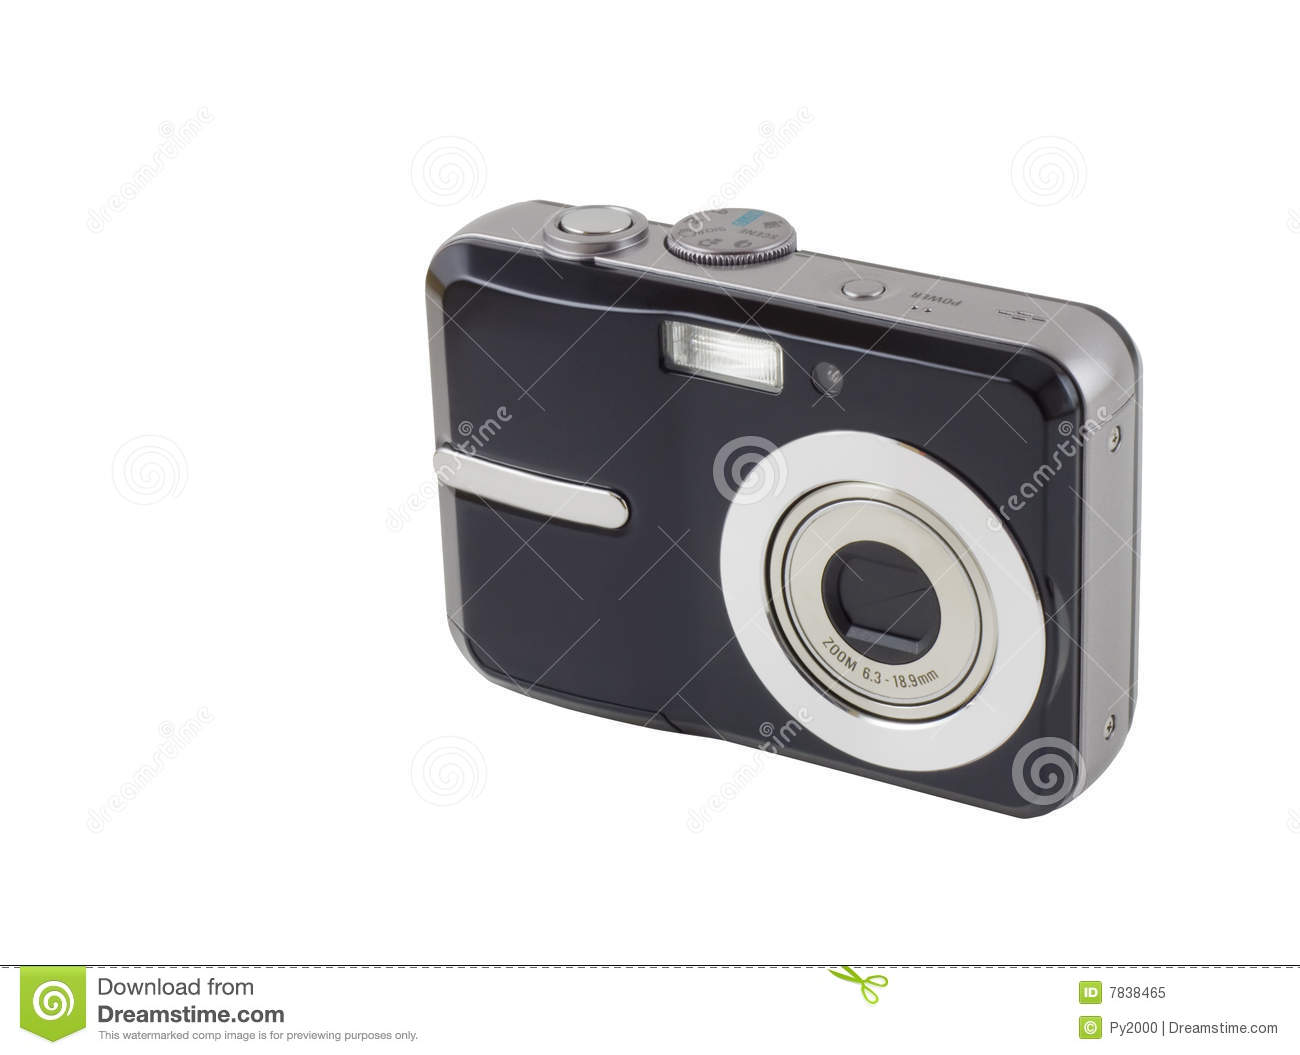 Download Digital Compact Camera stock image. Image of gadget, buttons - 7838465